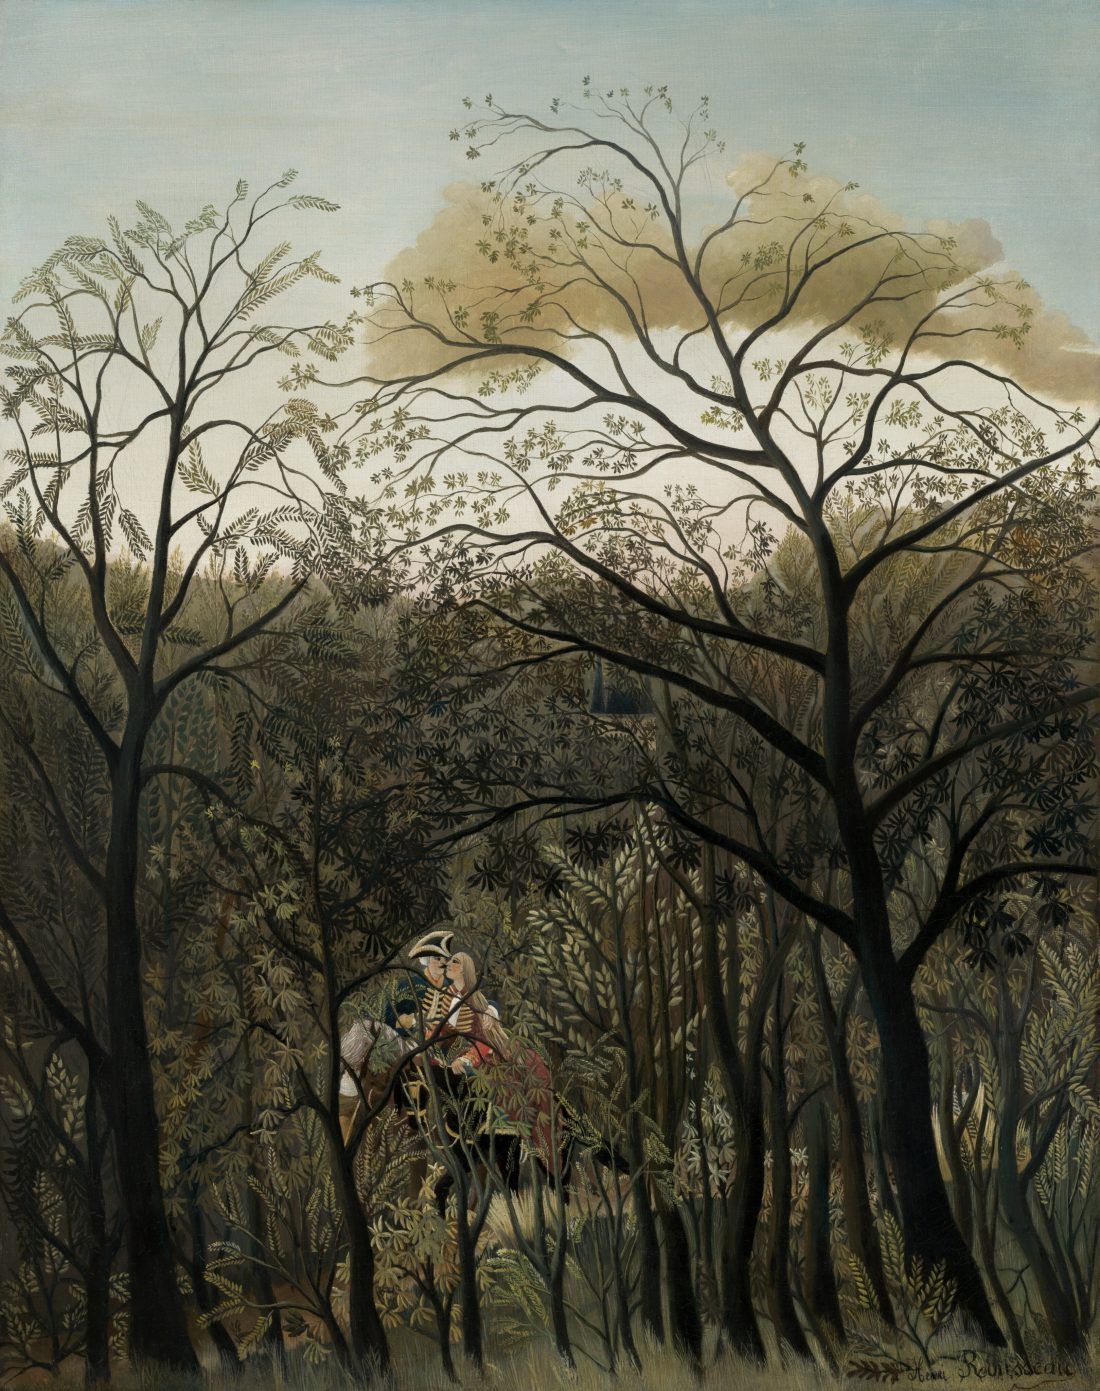 Henri Rousseau, Rendevouz in the Forest, 1889